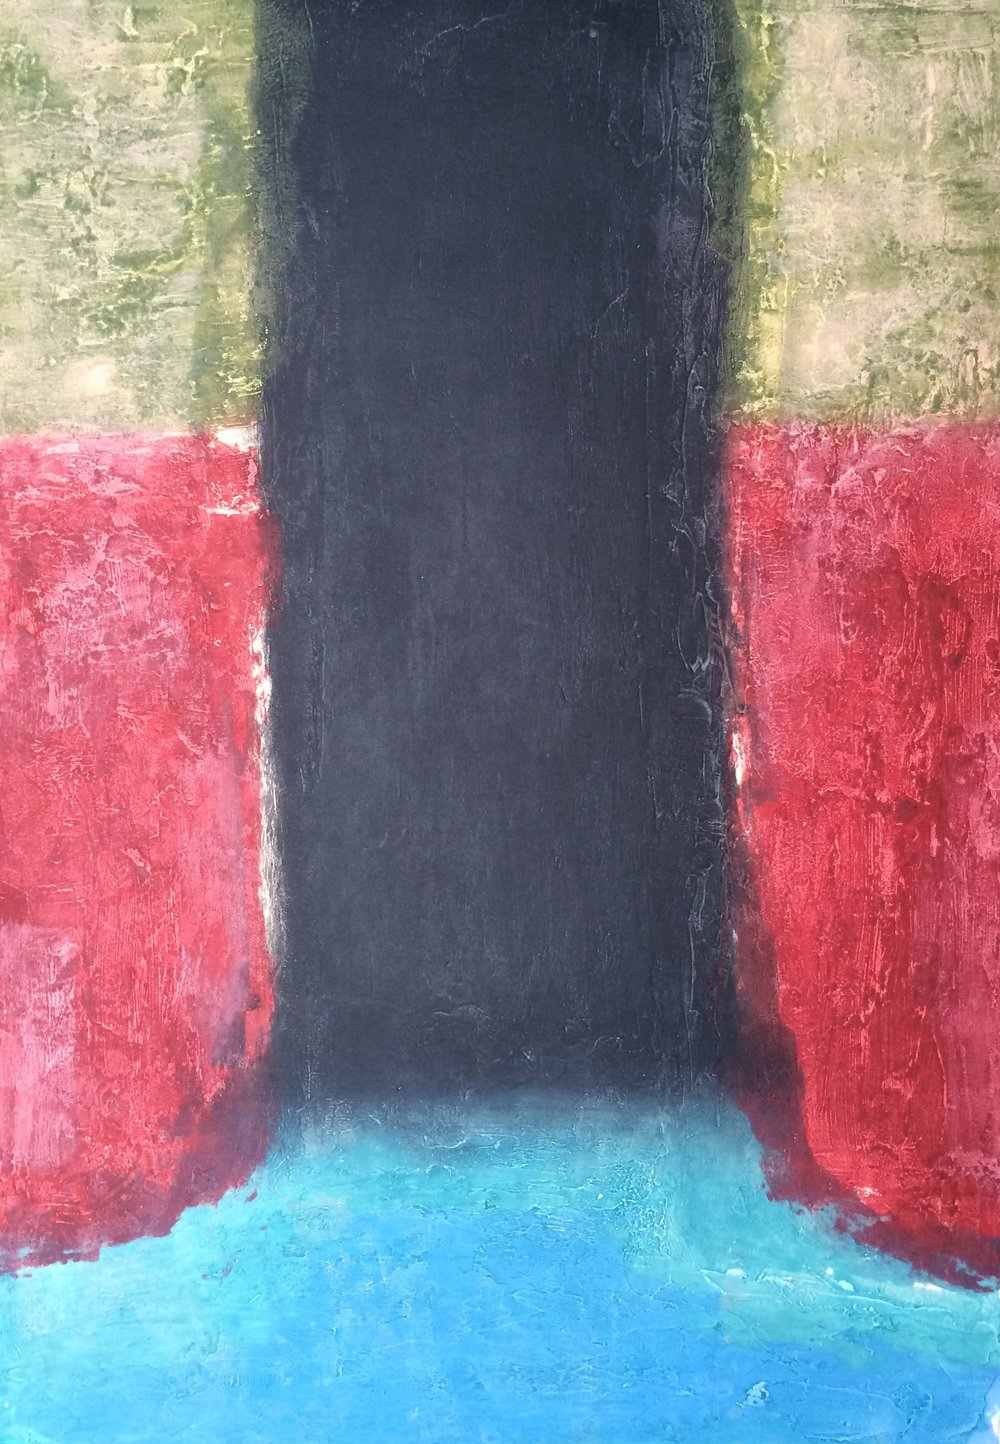 Gwen O'Dowd, Spaces  Carborundum, sheet and image 125x85cm, €1270.00 unframed